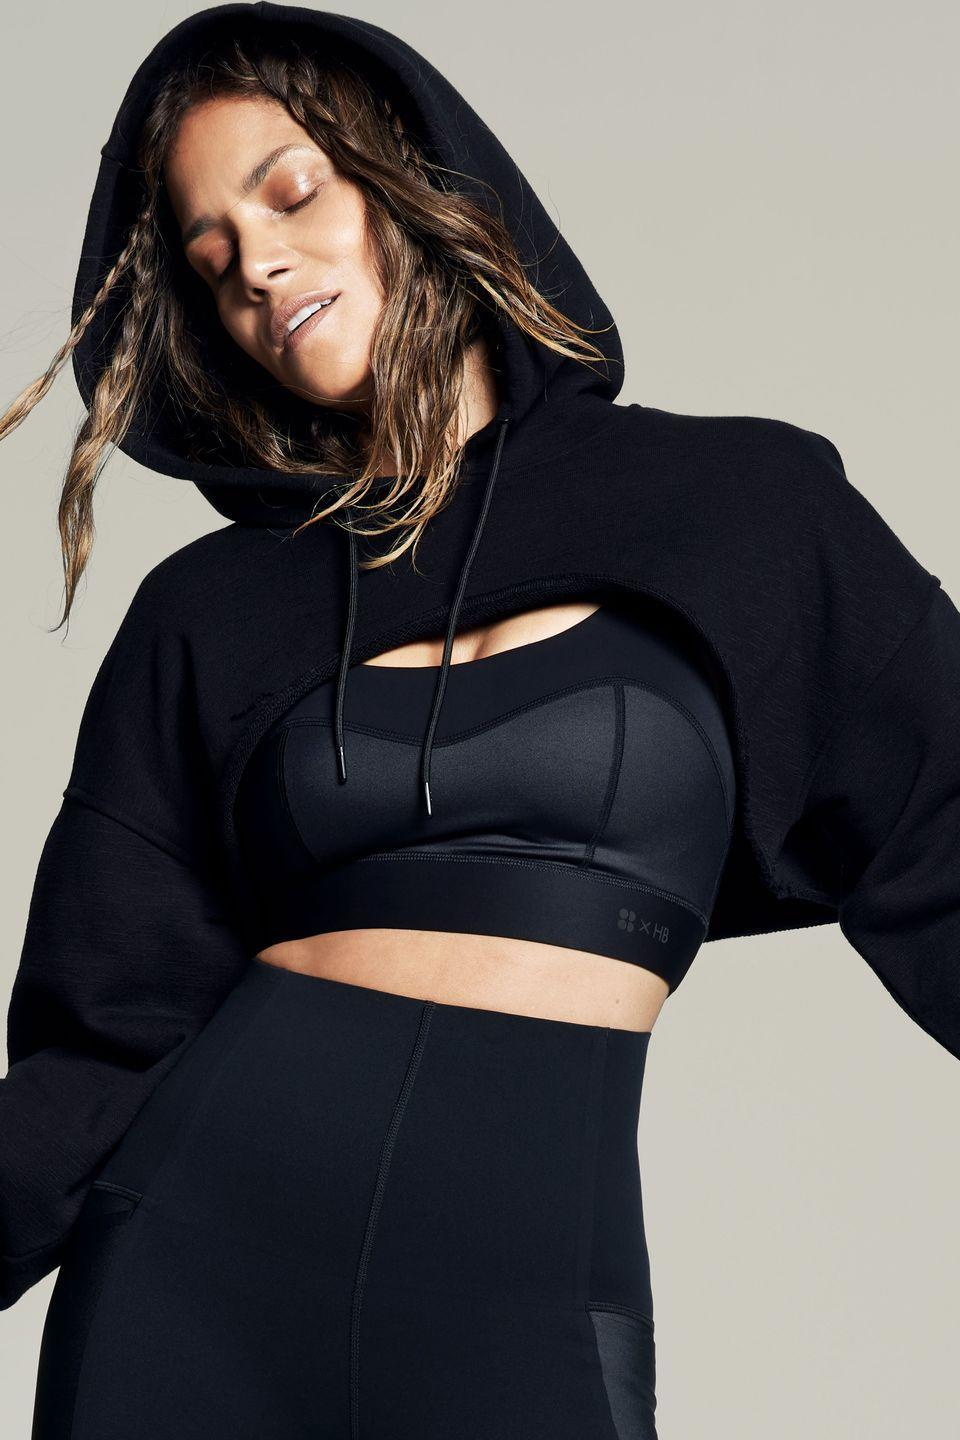 """<p>A sleek all-black set that feels a million dollars (just look at Halle's face. It says it all.) Made from premium technical materials this is about as luxe as sportswear gets.</p><p><strong>How much? </strong>Bra, £60, leggings, £75</p><p><a class=""""link rapid-noclick-resp"""" href=""""https://go.redirectingat.com?id=127X1599956&url=https%3A%2F%2Fwww.sweatybetty.com%2Fhalle-berry%2Fhalle-berry-edit%2Fstorm-power-shine-workout-bra-SB6905_Black.html&sref=https%3A%2F%2Fwww.womenshealthmag.com%2Fuk%2Fgym-wear%2Fg36447378%2Fsweaty-betty-halle-berry%2F"""" rel=""""nofollow noopener"""" target=""""_blank"""" data-ylk=""""slk:SHOP NOW"""">SHOP NOW</a></p>"""